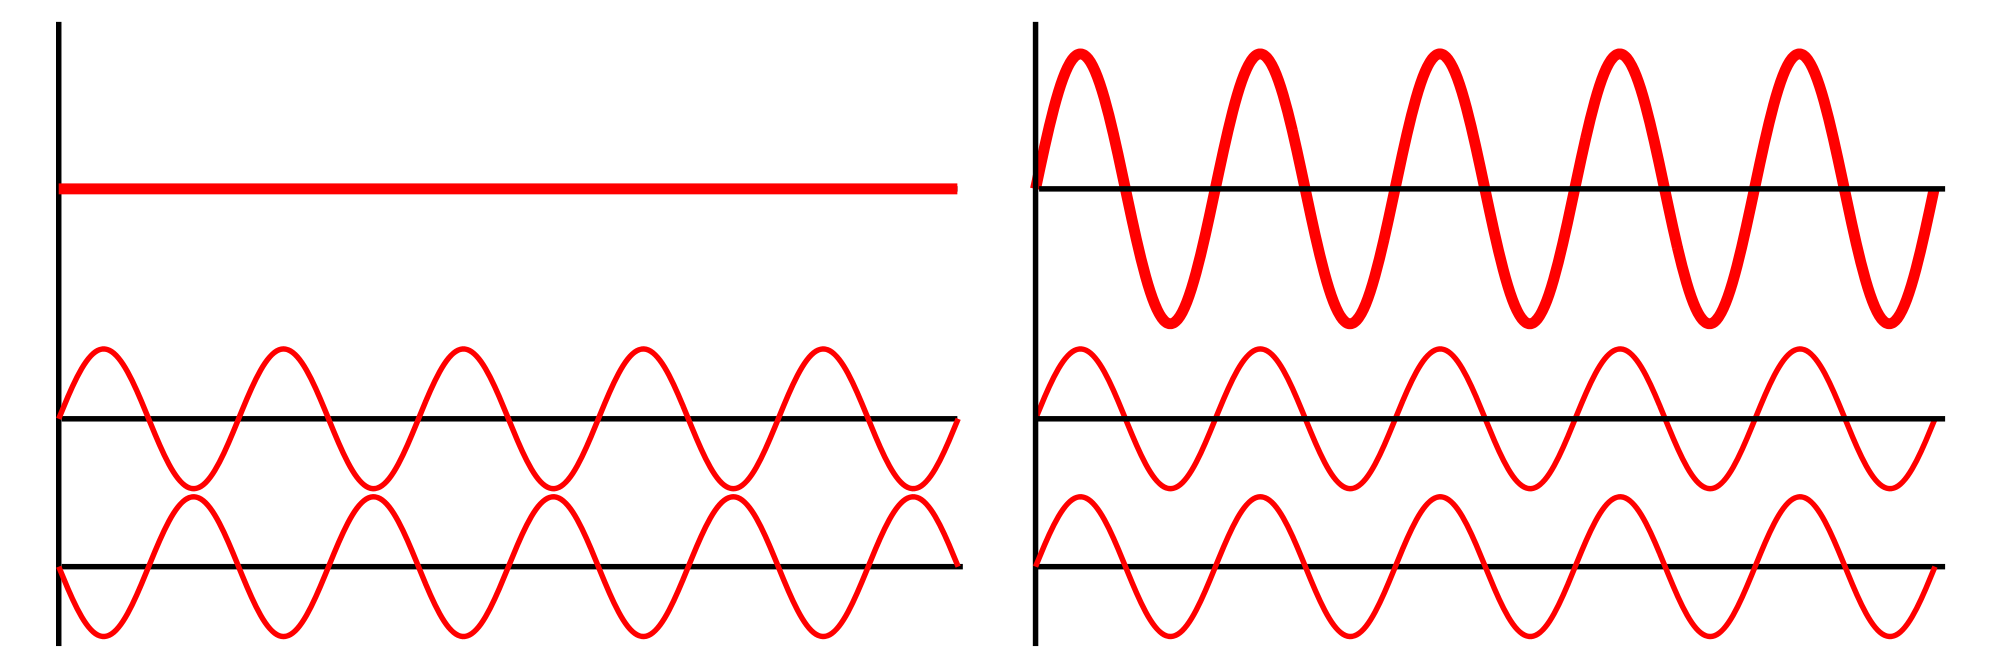 Image:Interference of two waves.png